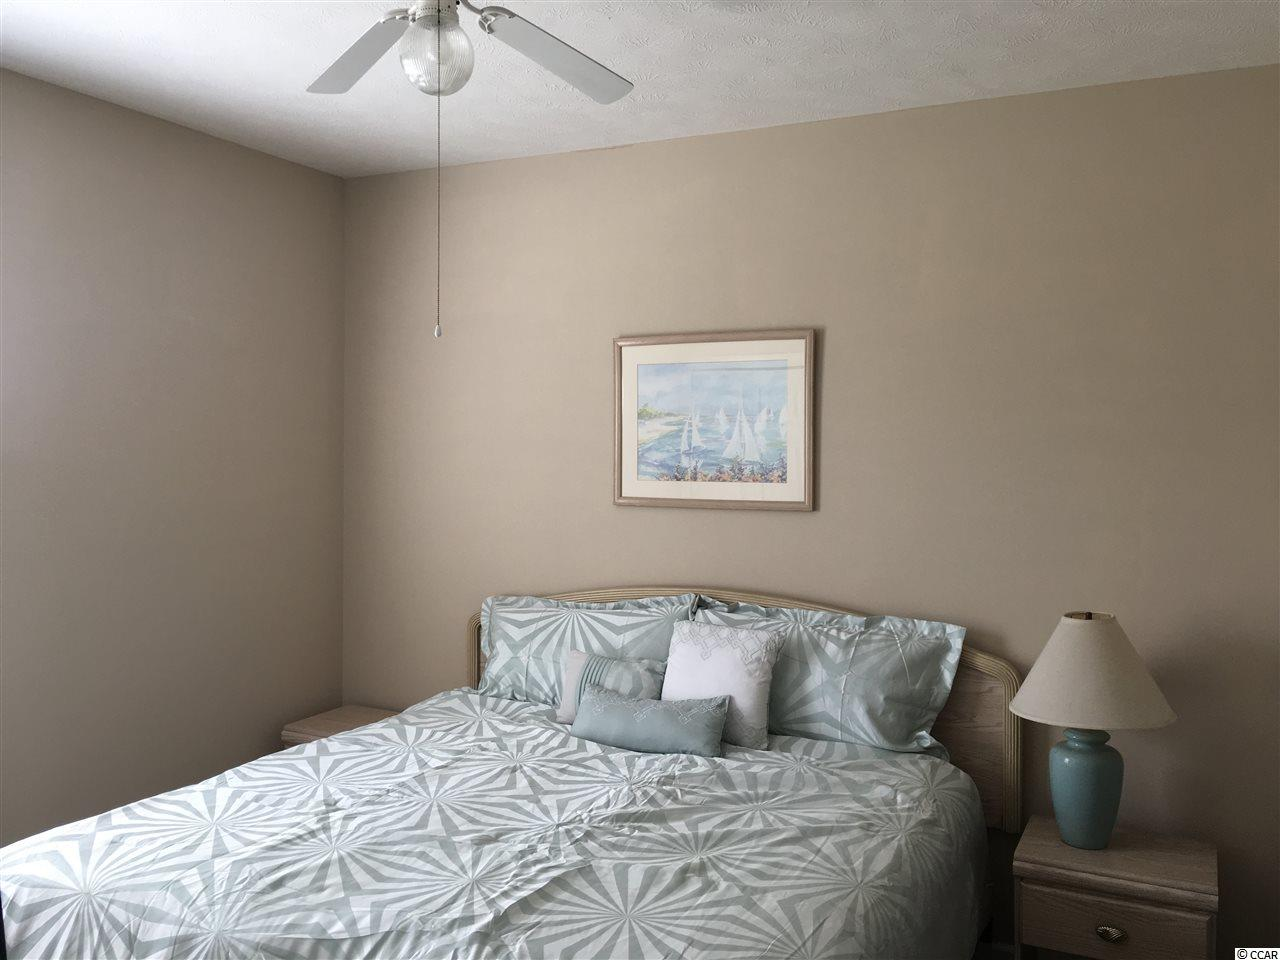 MLS #1716520 at  RIVER OAKS CONDOS for sale